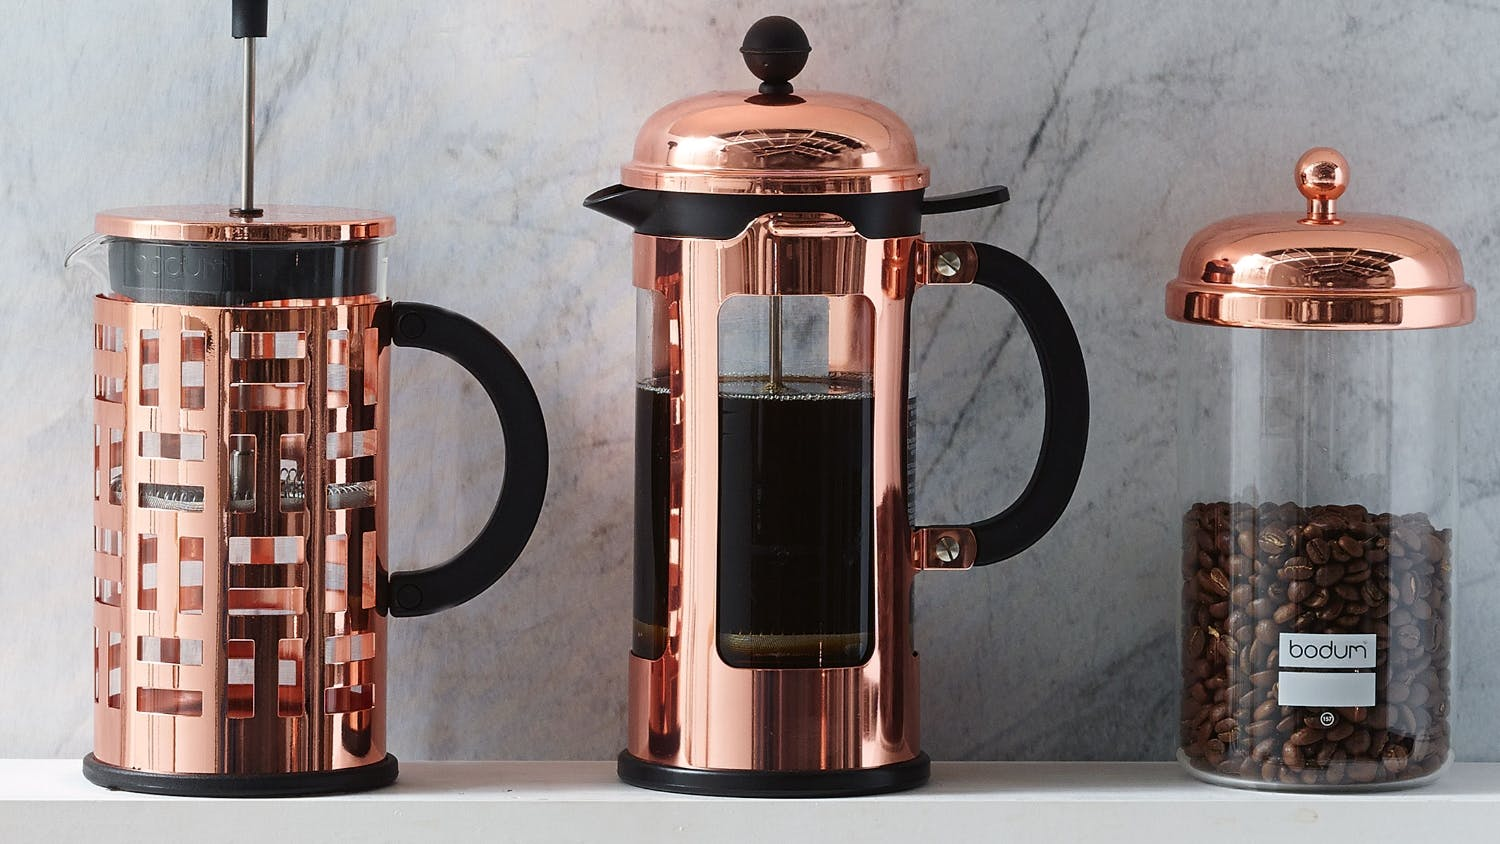 bodum 1 cup french press instructions